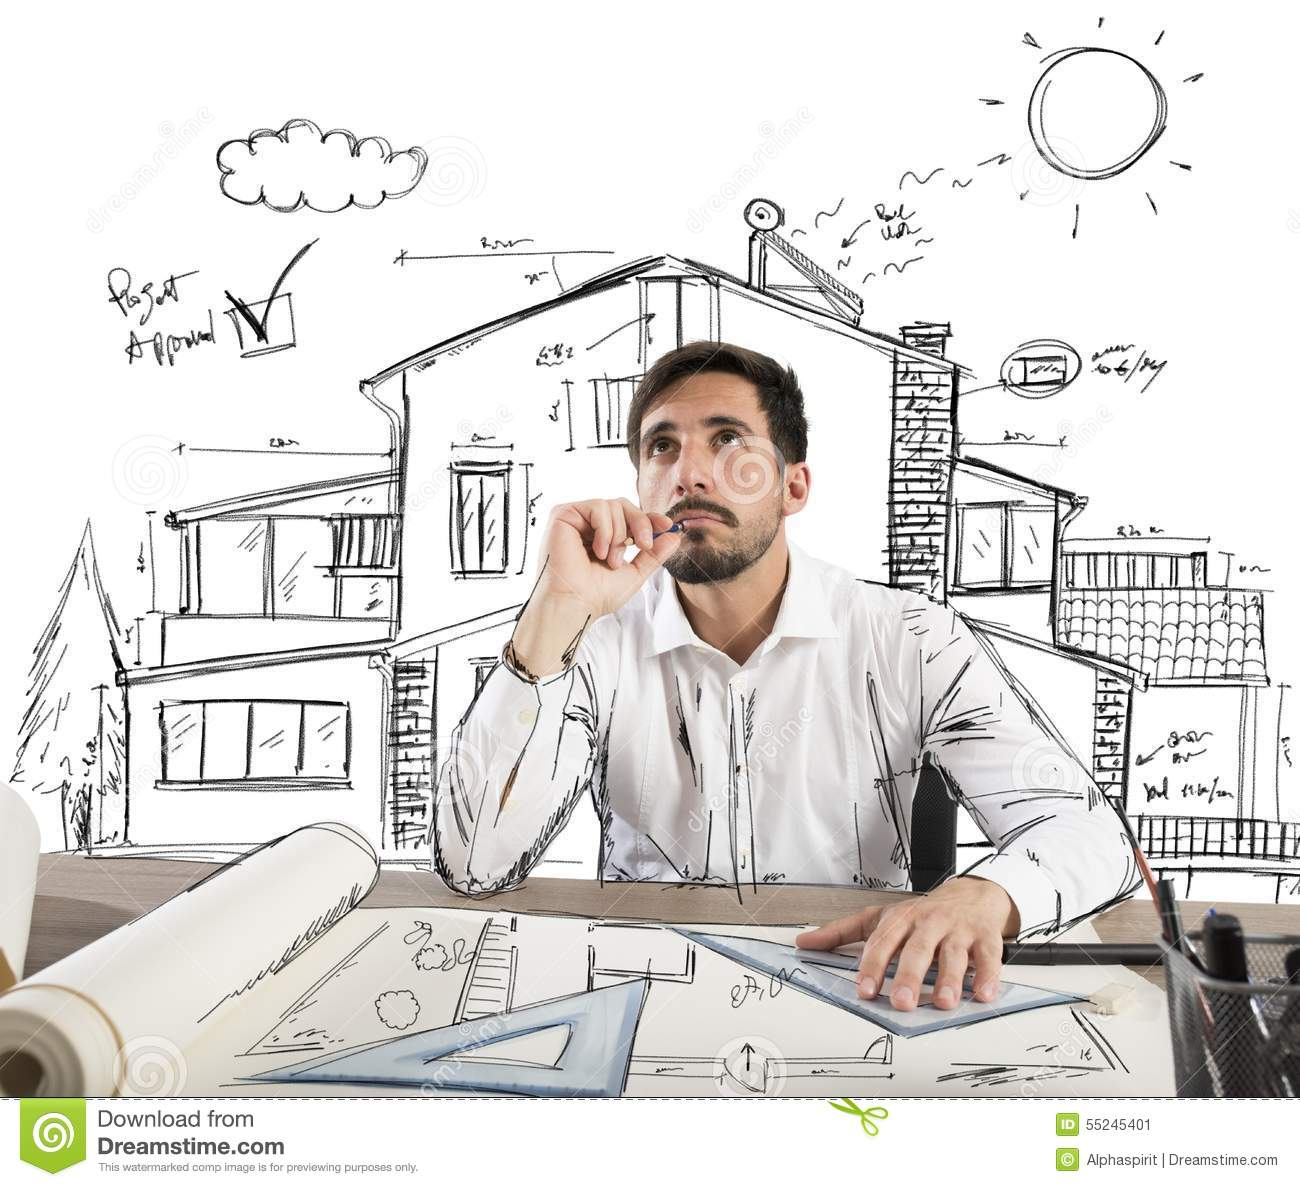 How To Be A Home Designer Pensive Architect Stock Photo Image 55245401